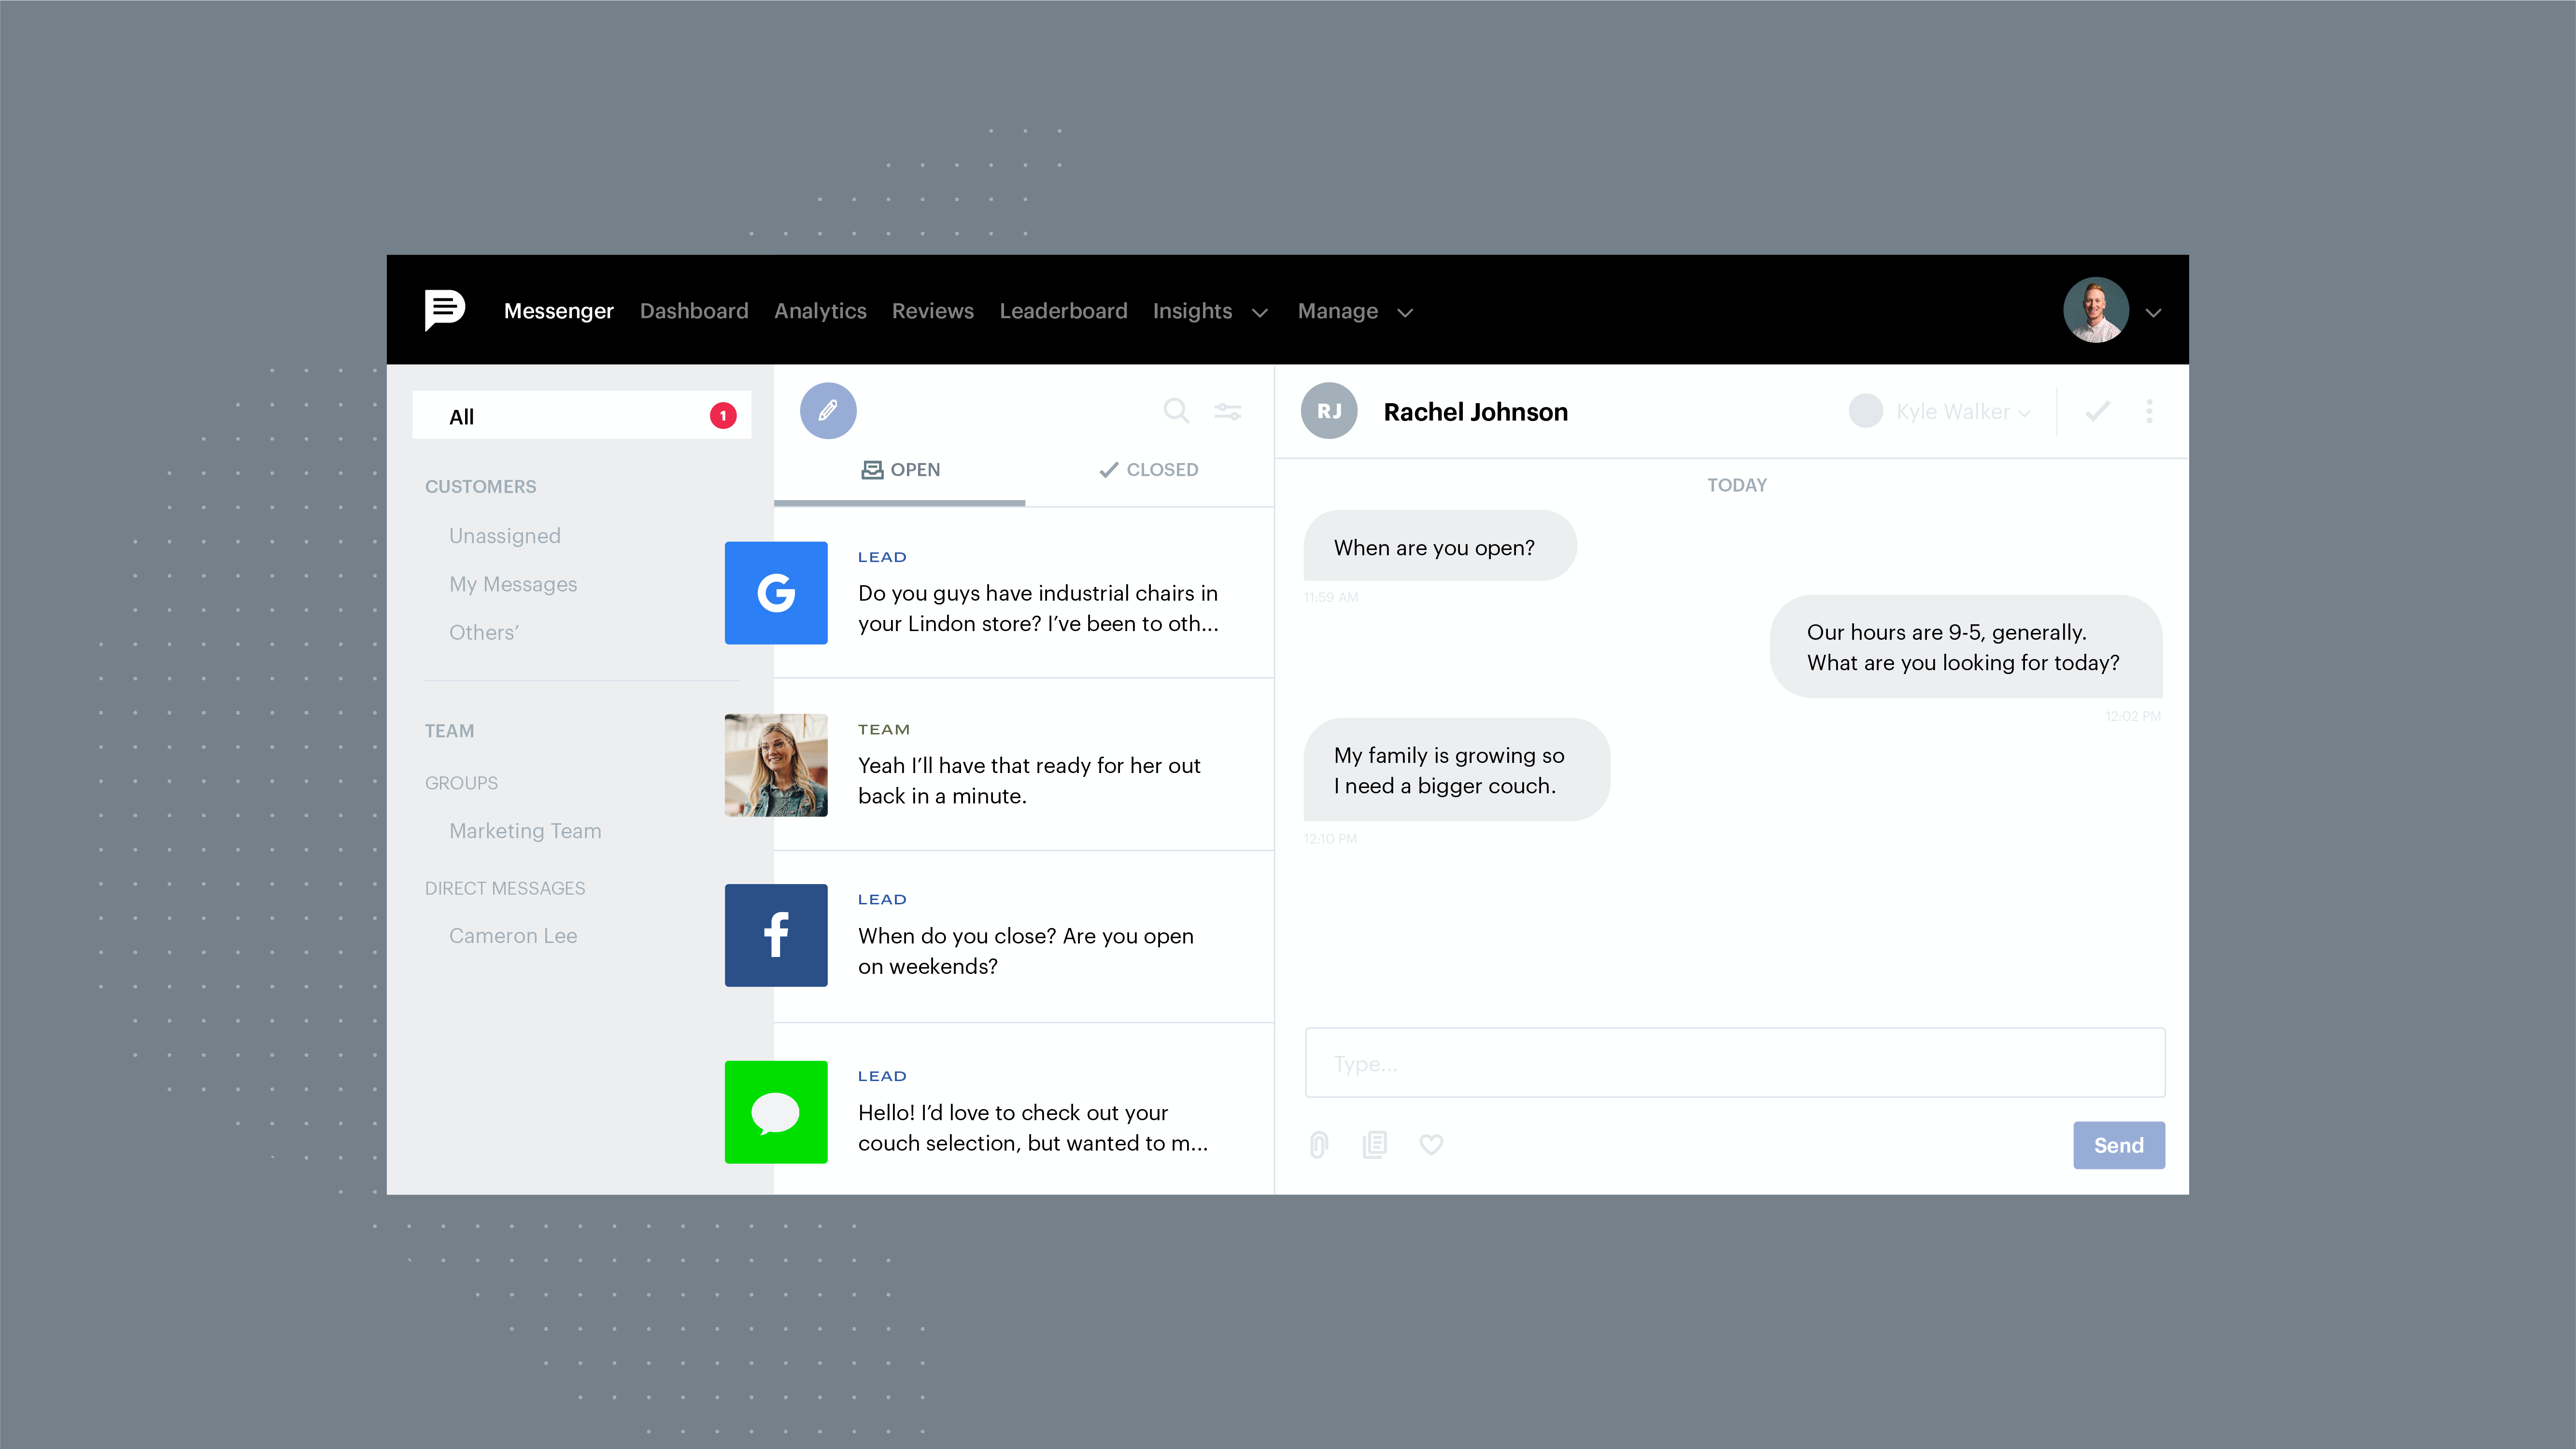 Podium screenshot: Easily manage all your customer messaging channels in one dashboard. Add user level access so the right teams are able to handle any communication and your customers have a great experience.